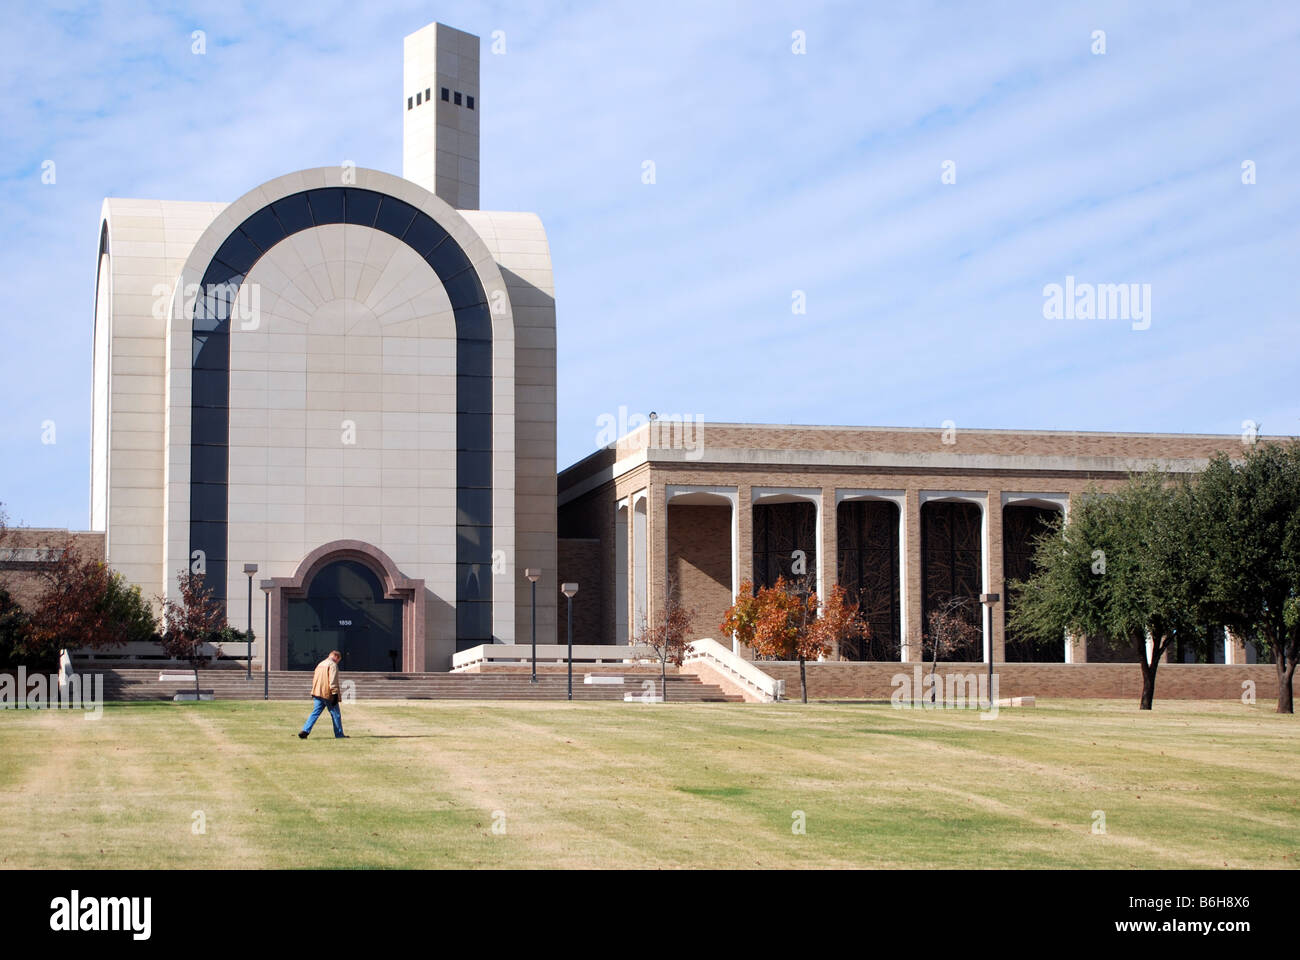 Abilene Christian University Bible Building with man walking in front of it - Stock Image